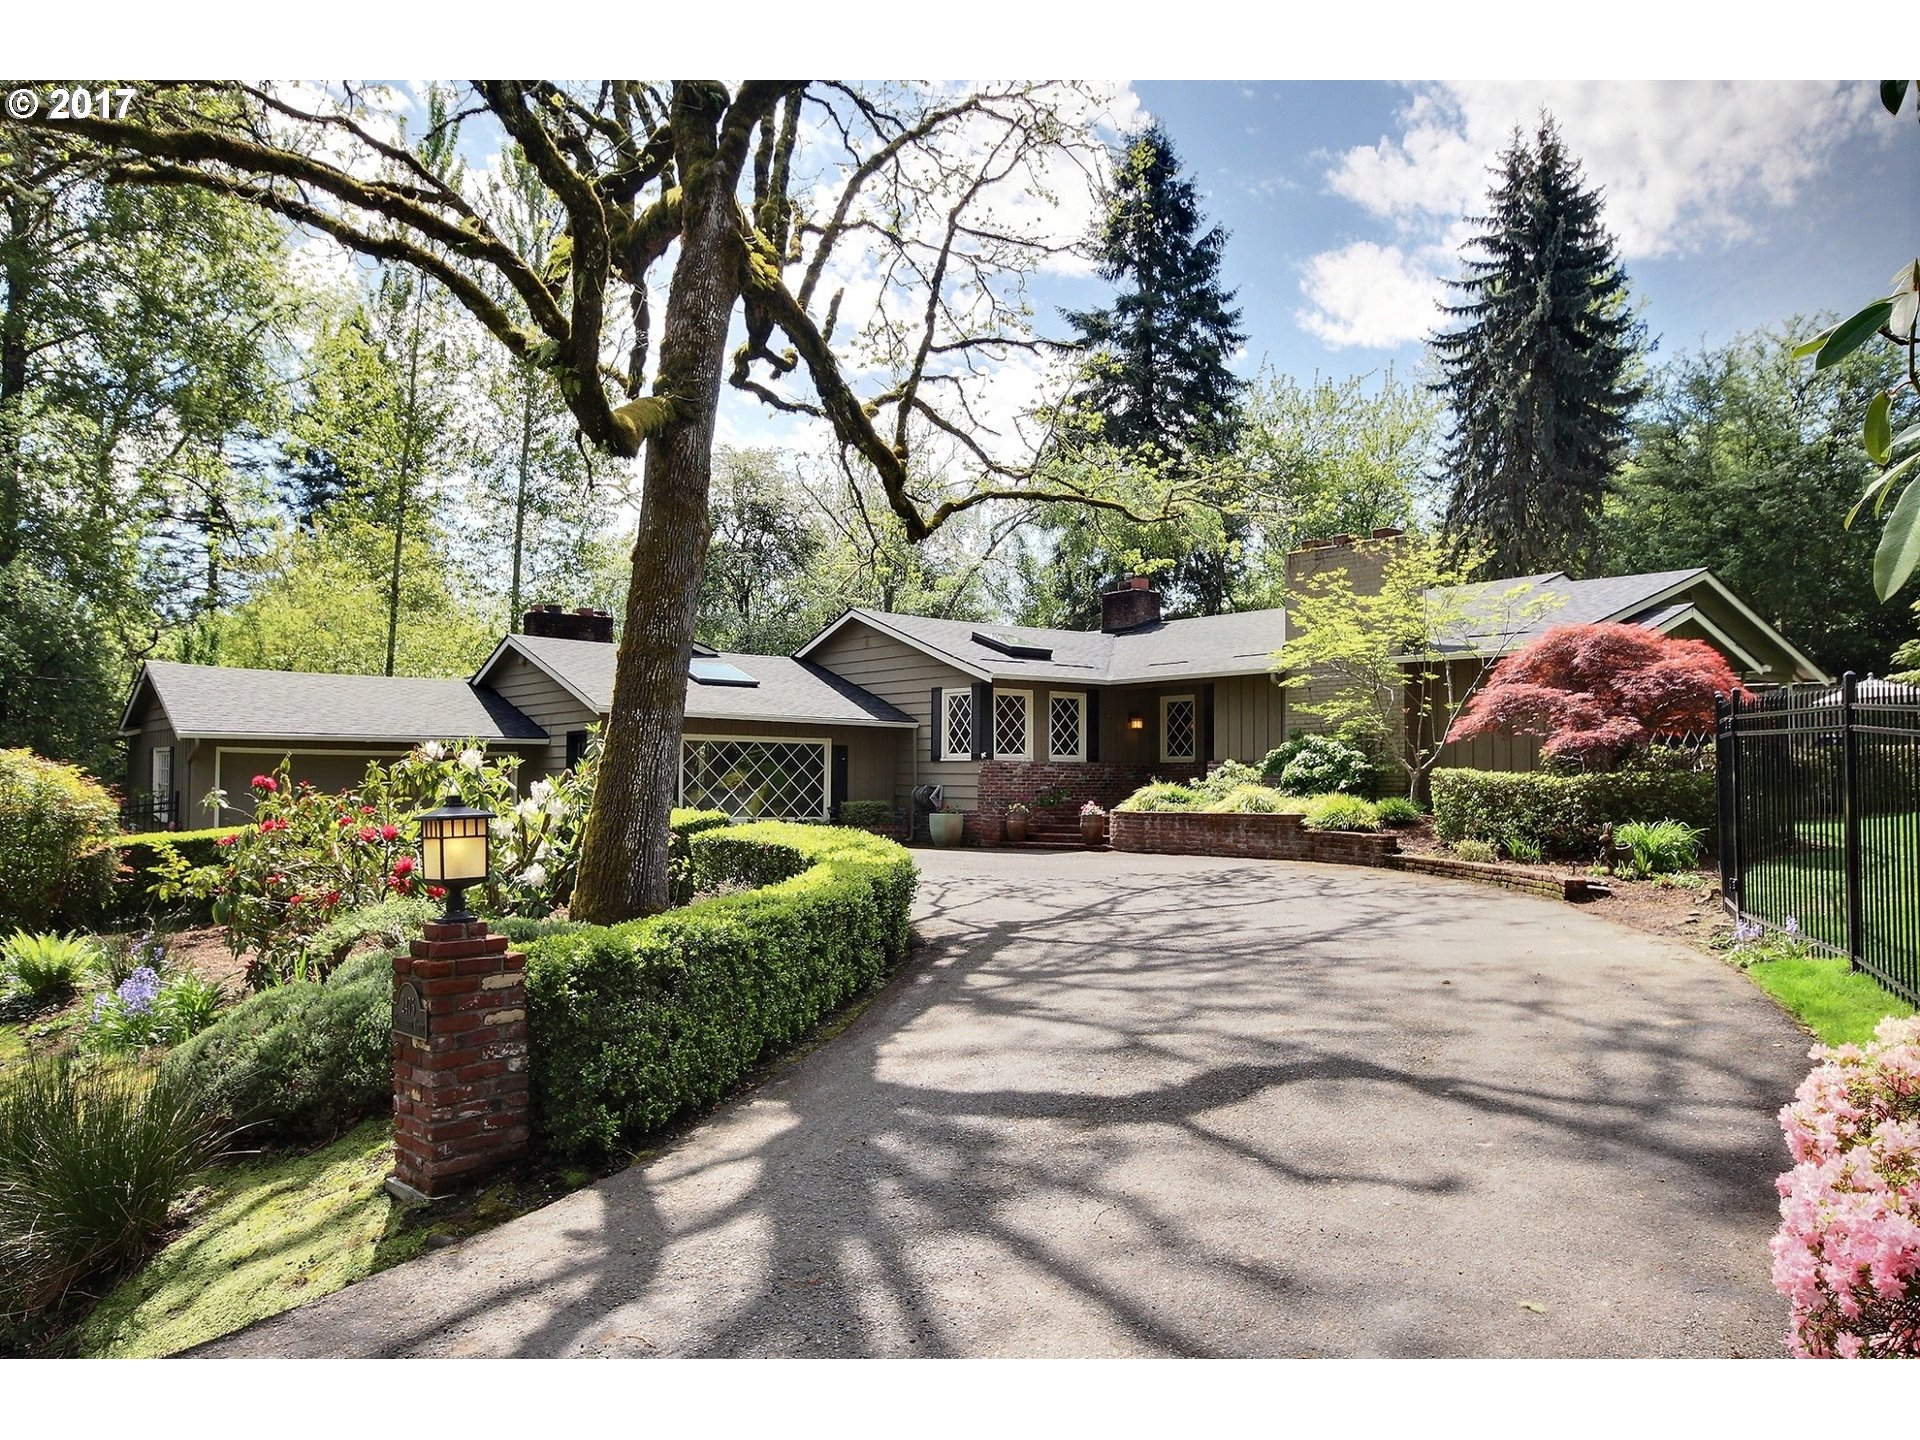 2475 GLENMORRIE DR, Lake Oswego, OR 97034